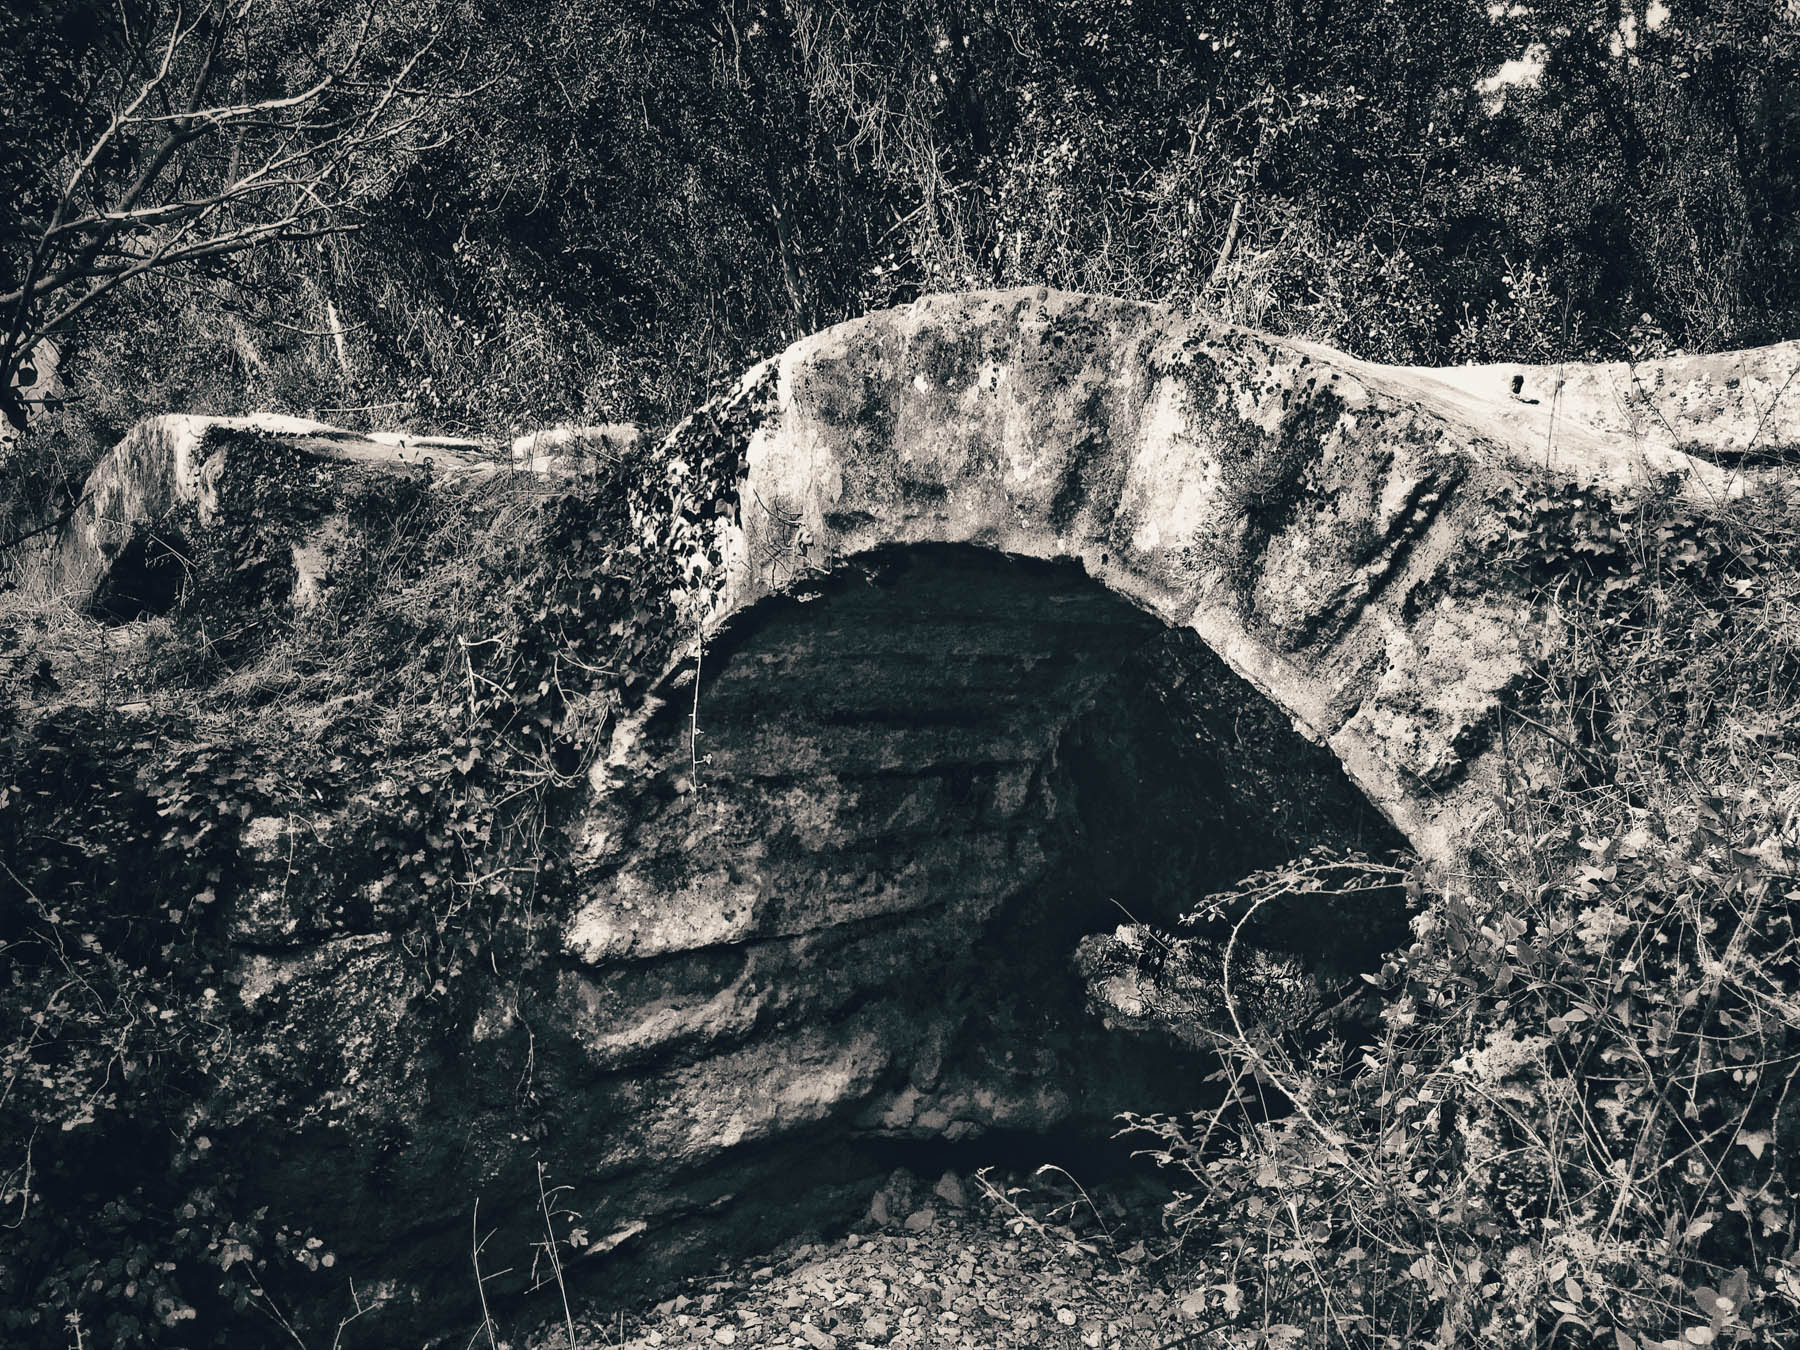 Three arches spanning the Bornègre, on top of which the aqueduct was constructed.  Interesting because of the arches, made up of blocks of interlocking stone that individually cover the complete width of the bridge.